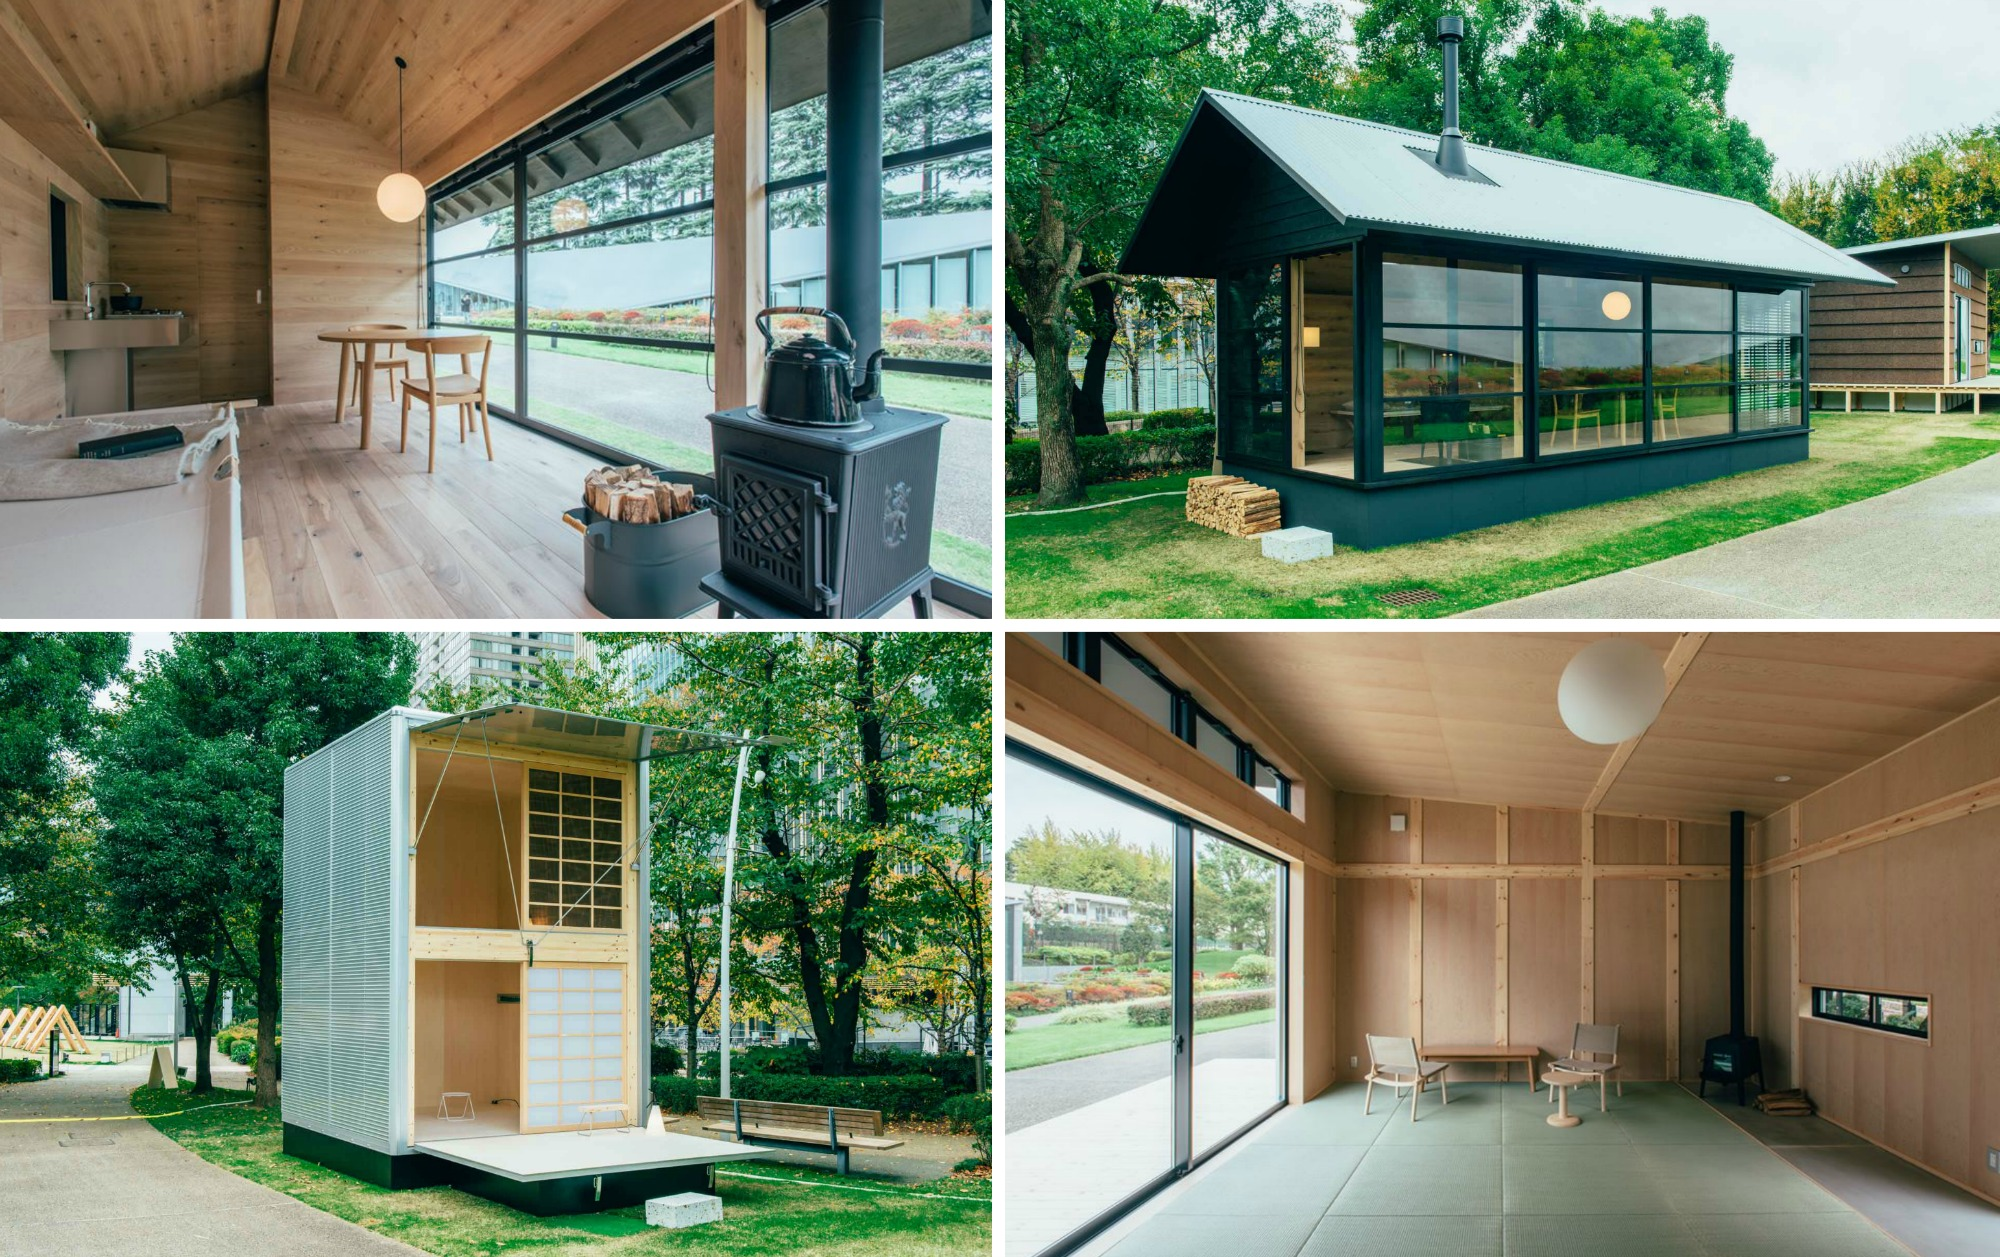 Tiny house 39 muji huts 39 will start at just 25 000 6sqft for Tiny house photo gallery